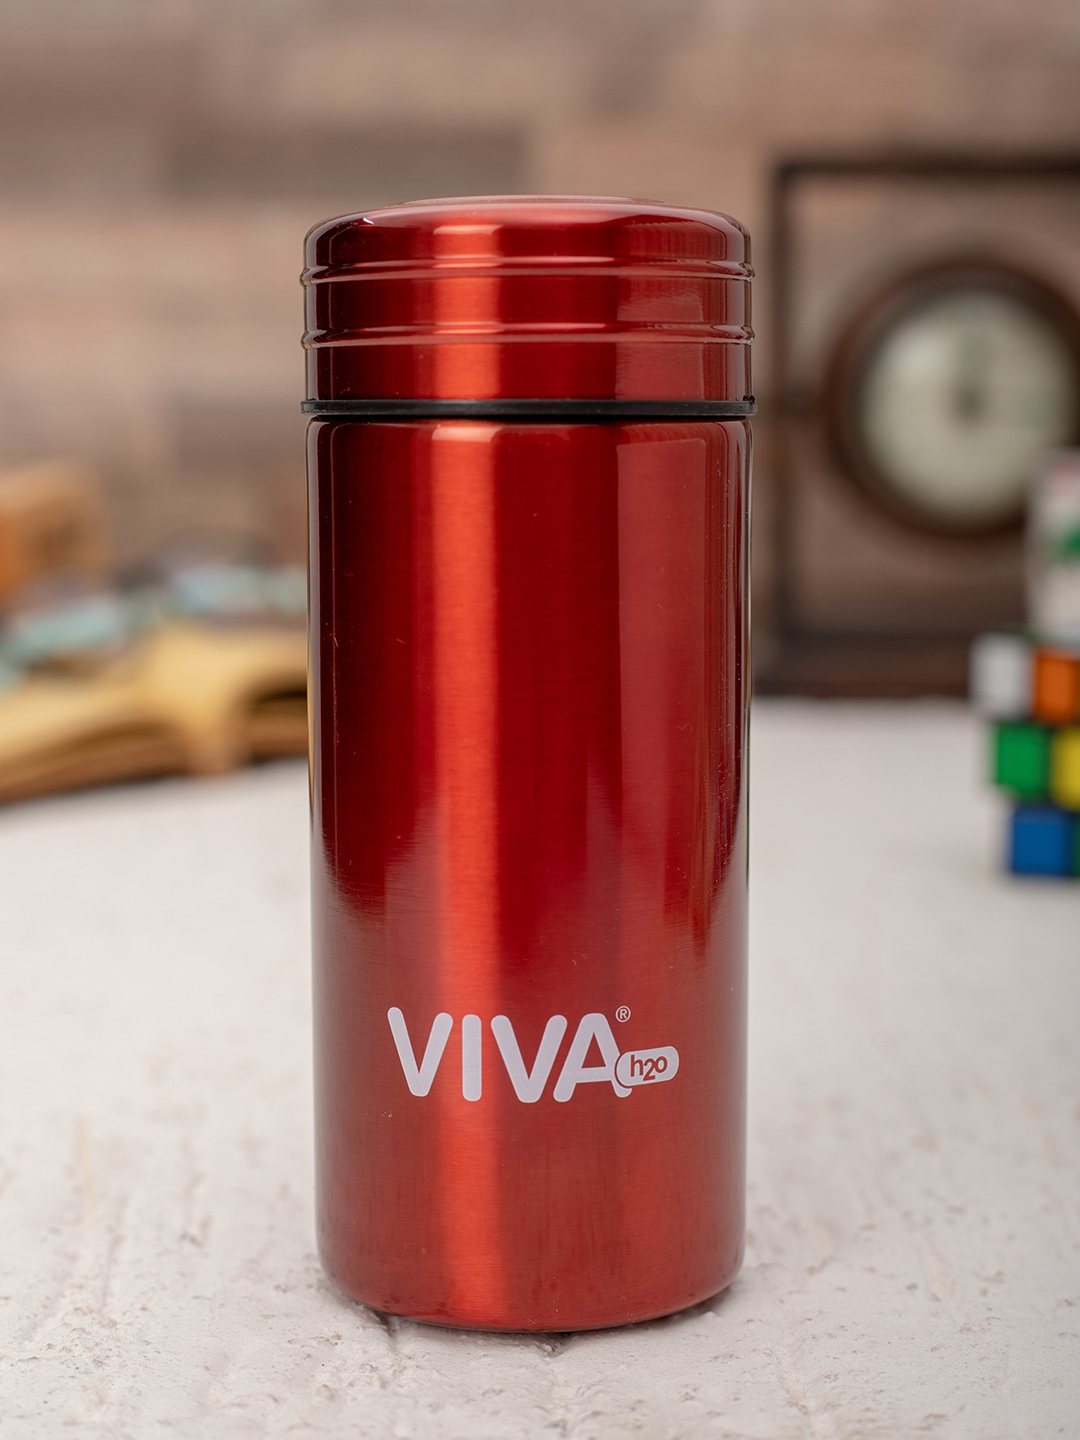 VIVA h2o Unisex Red Solid Double Wall Stainless Steel Vaccum Insulated Water Bottle